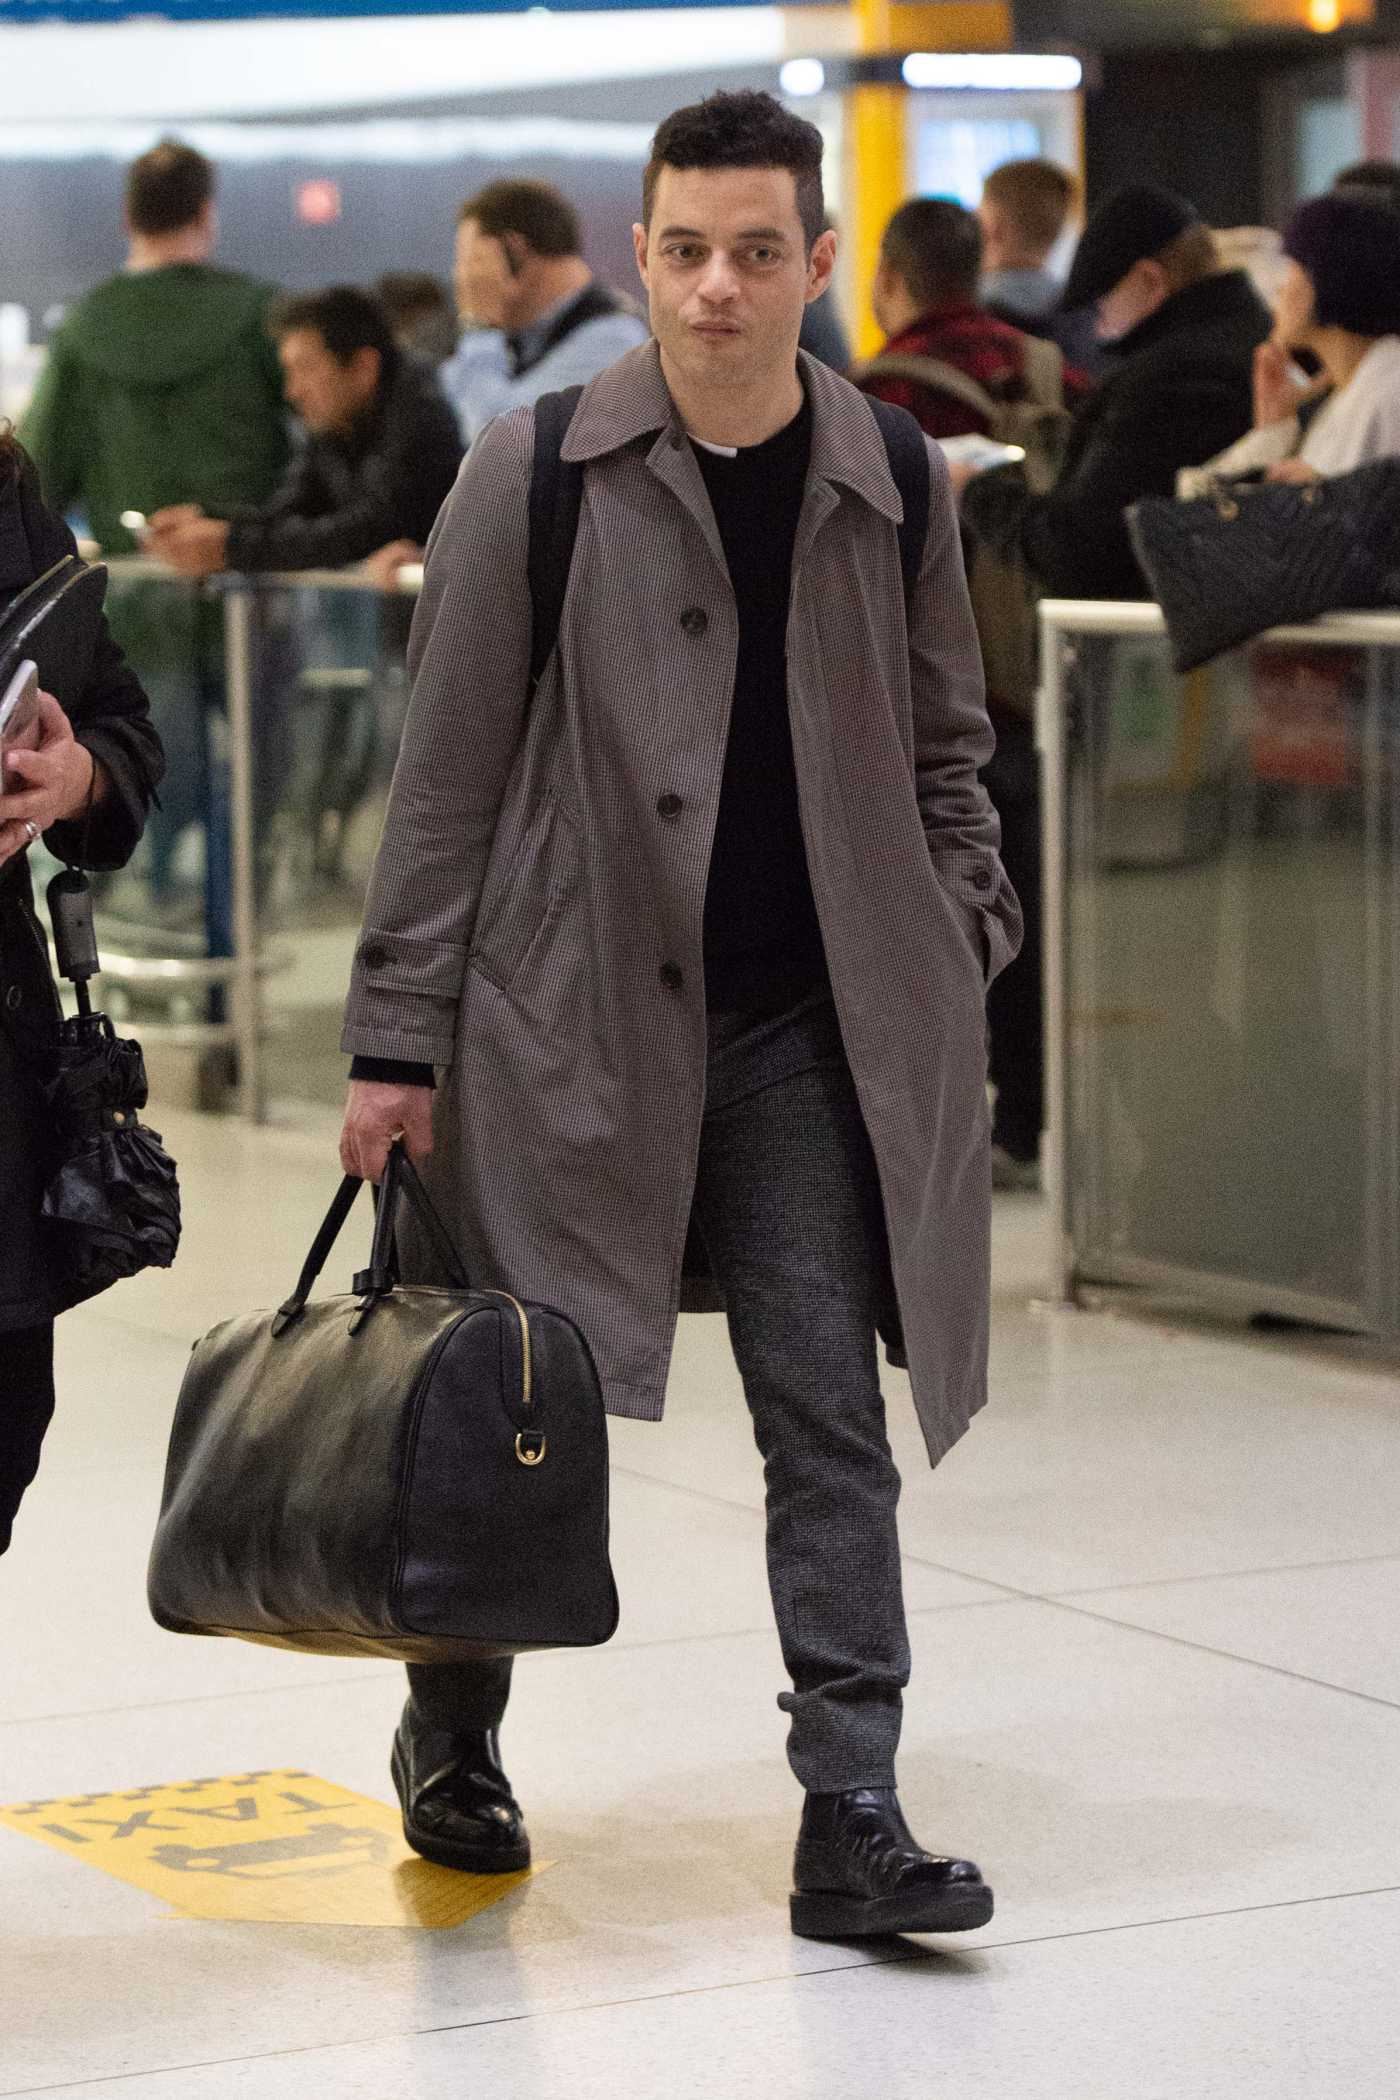 Rami Malek in a Beige Trench Coat Arrives at JFK Airport in NYC 04/13/2019